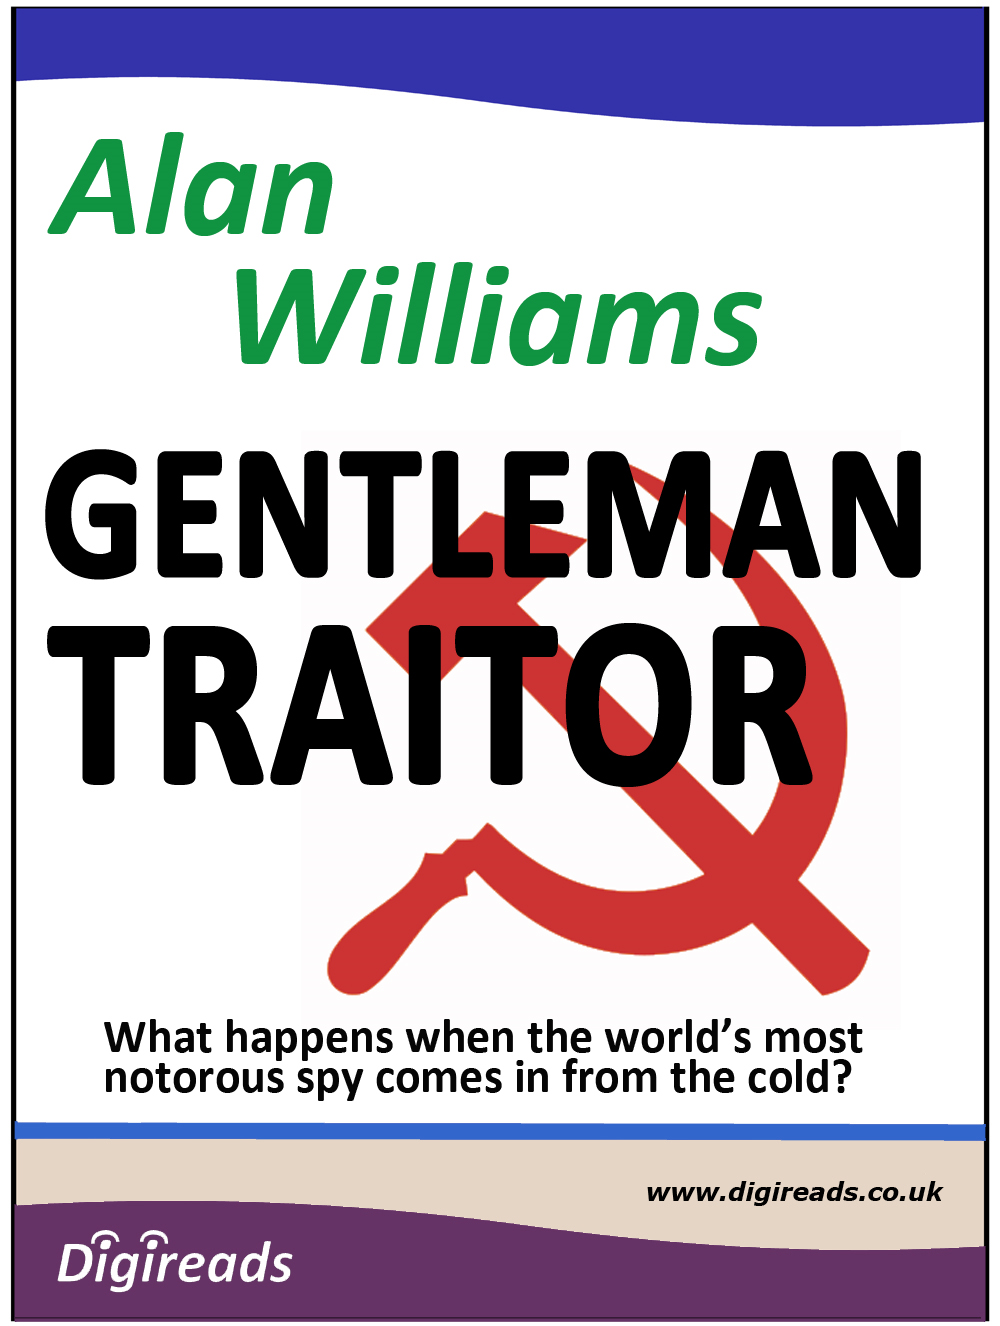 Gentleman Traitor